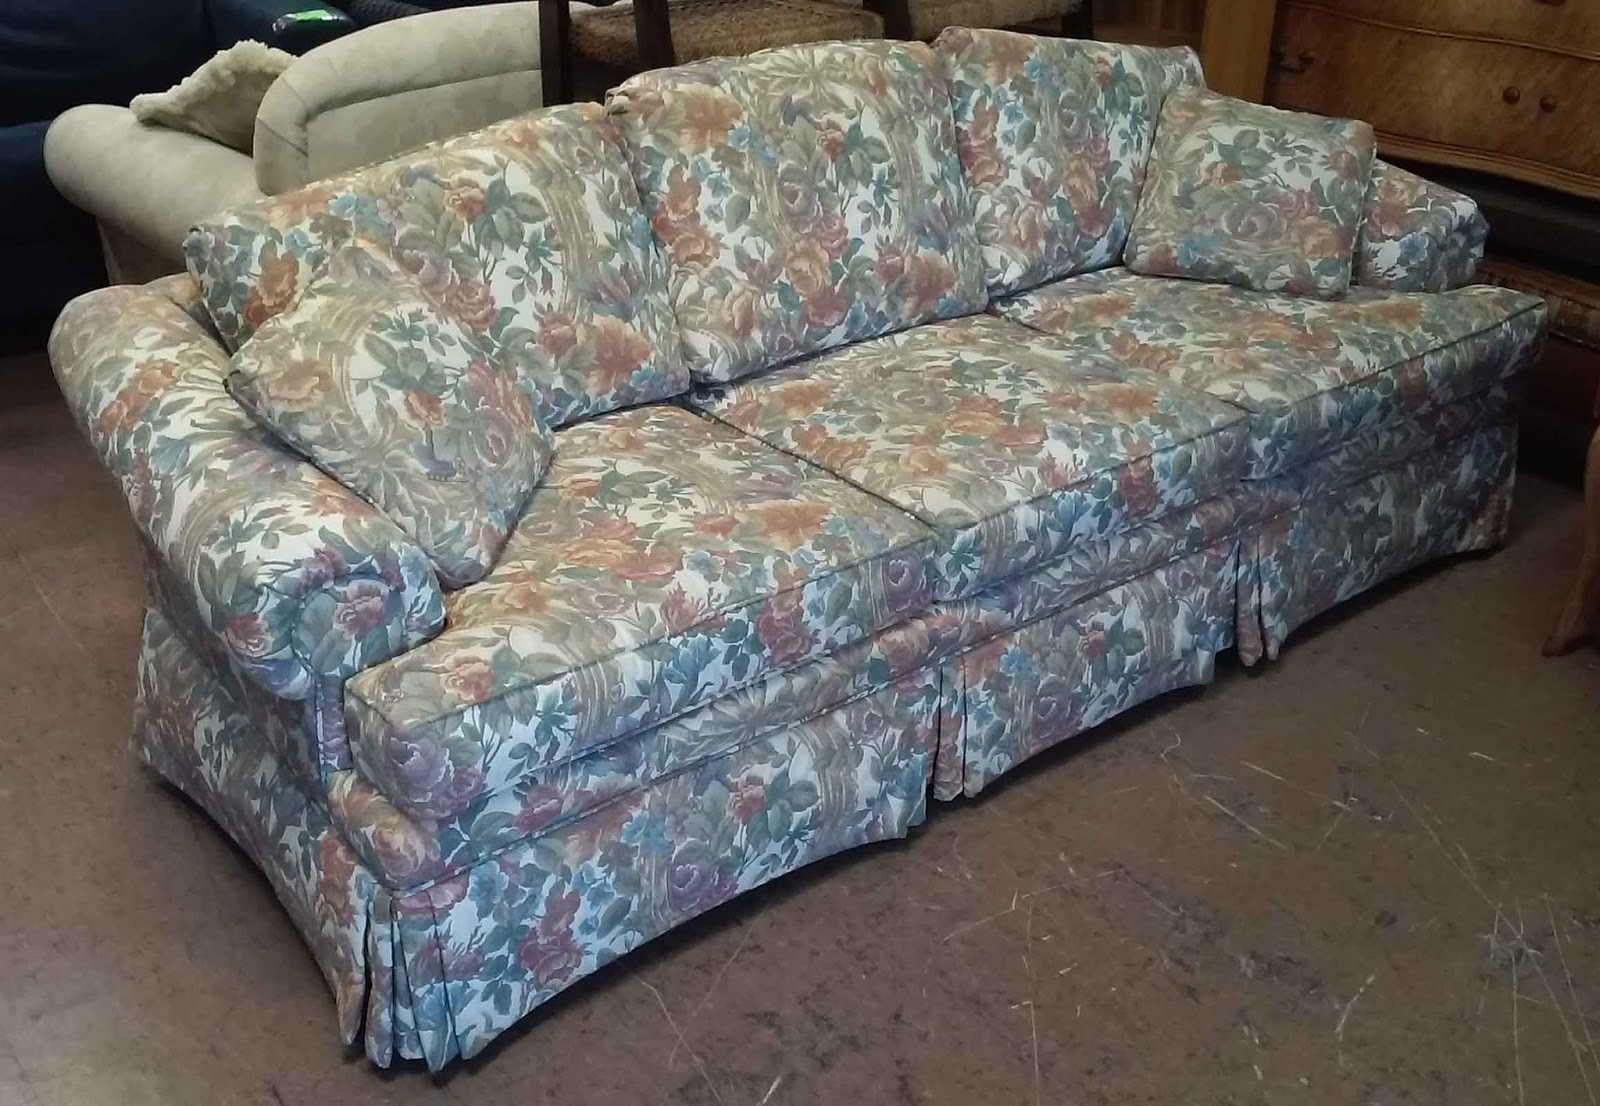 SOLD Ethan Allen Full Sized Floral Sofa   $110